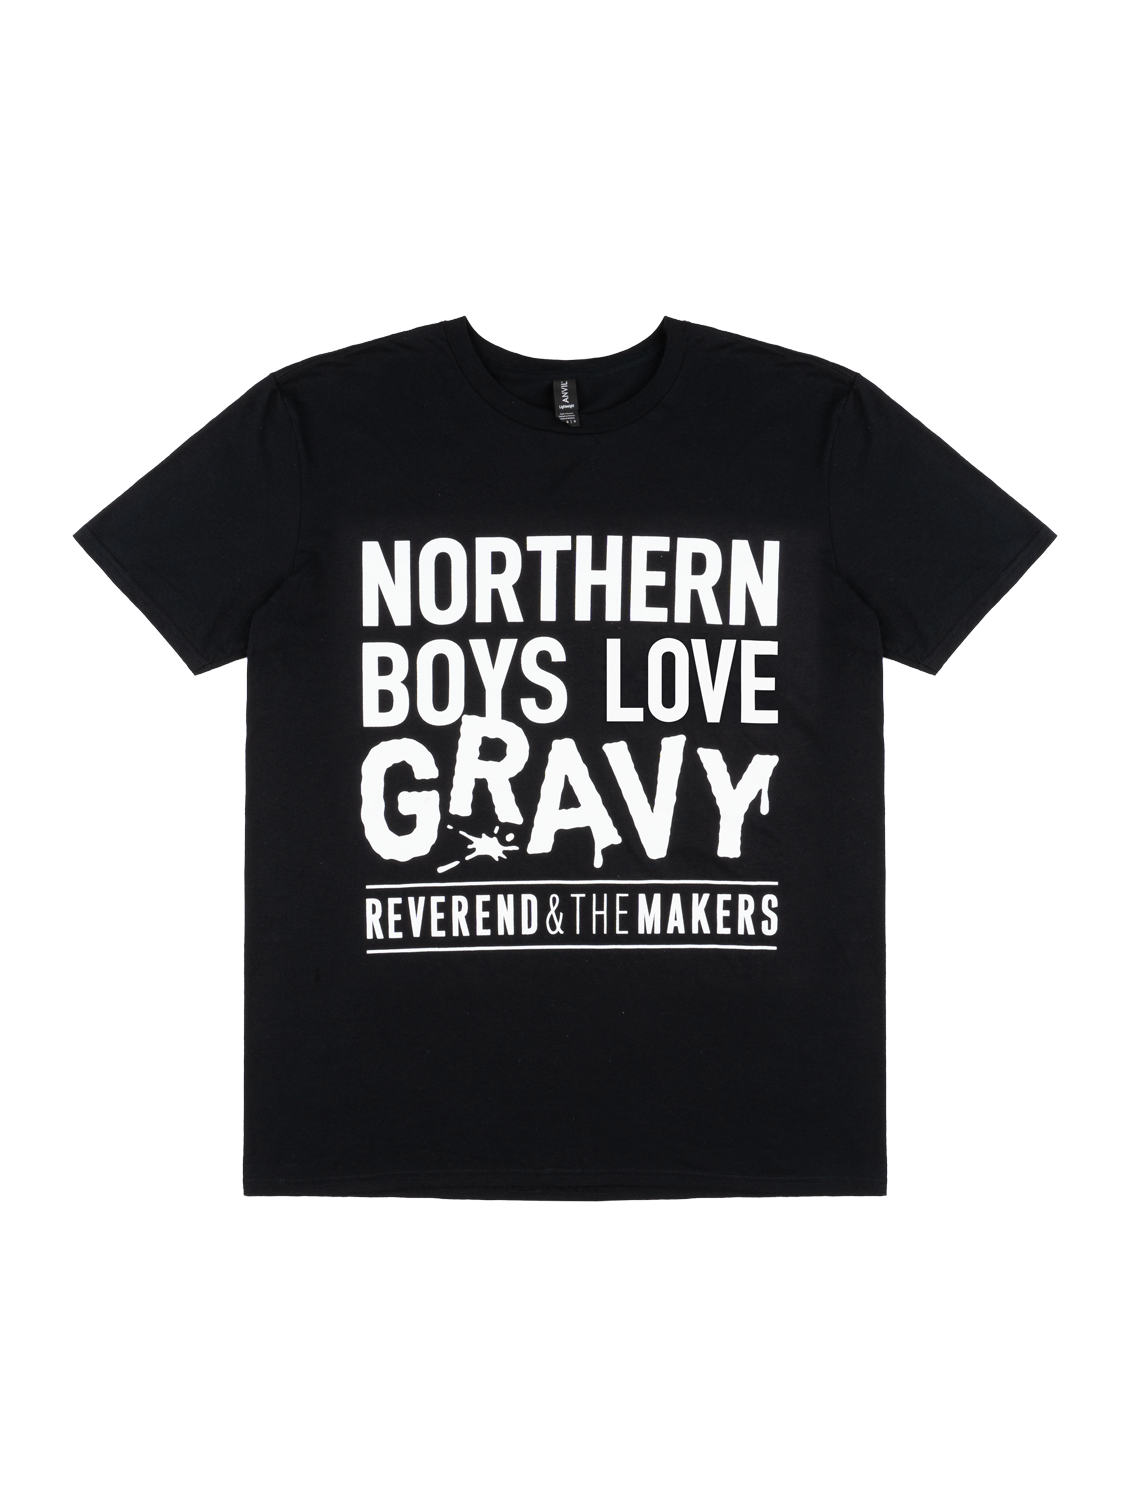 Northern Boys Love Gravy